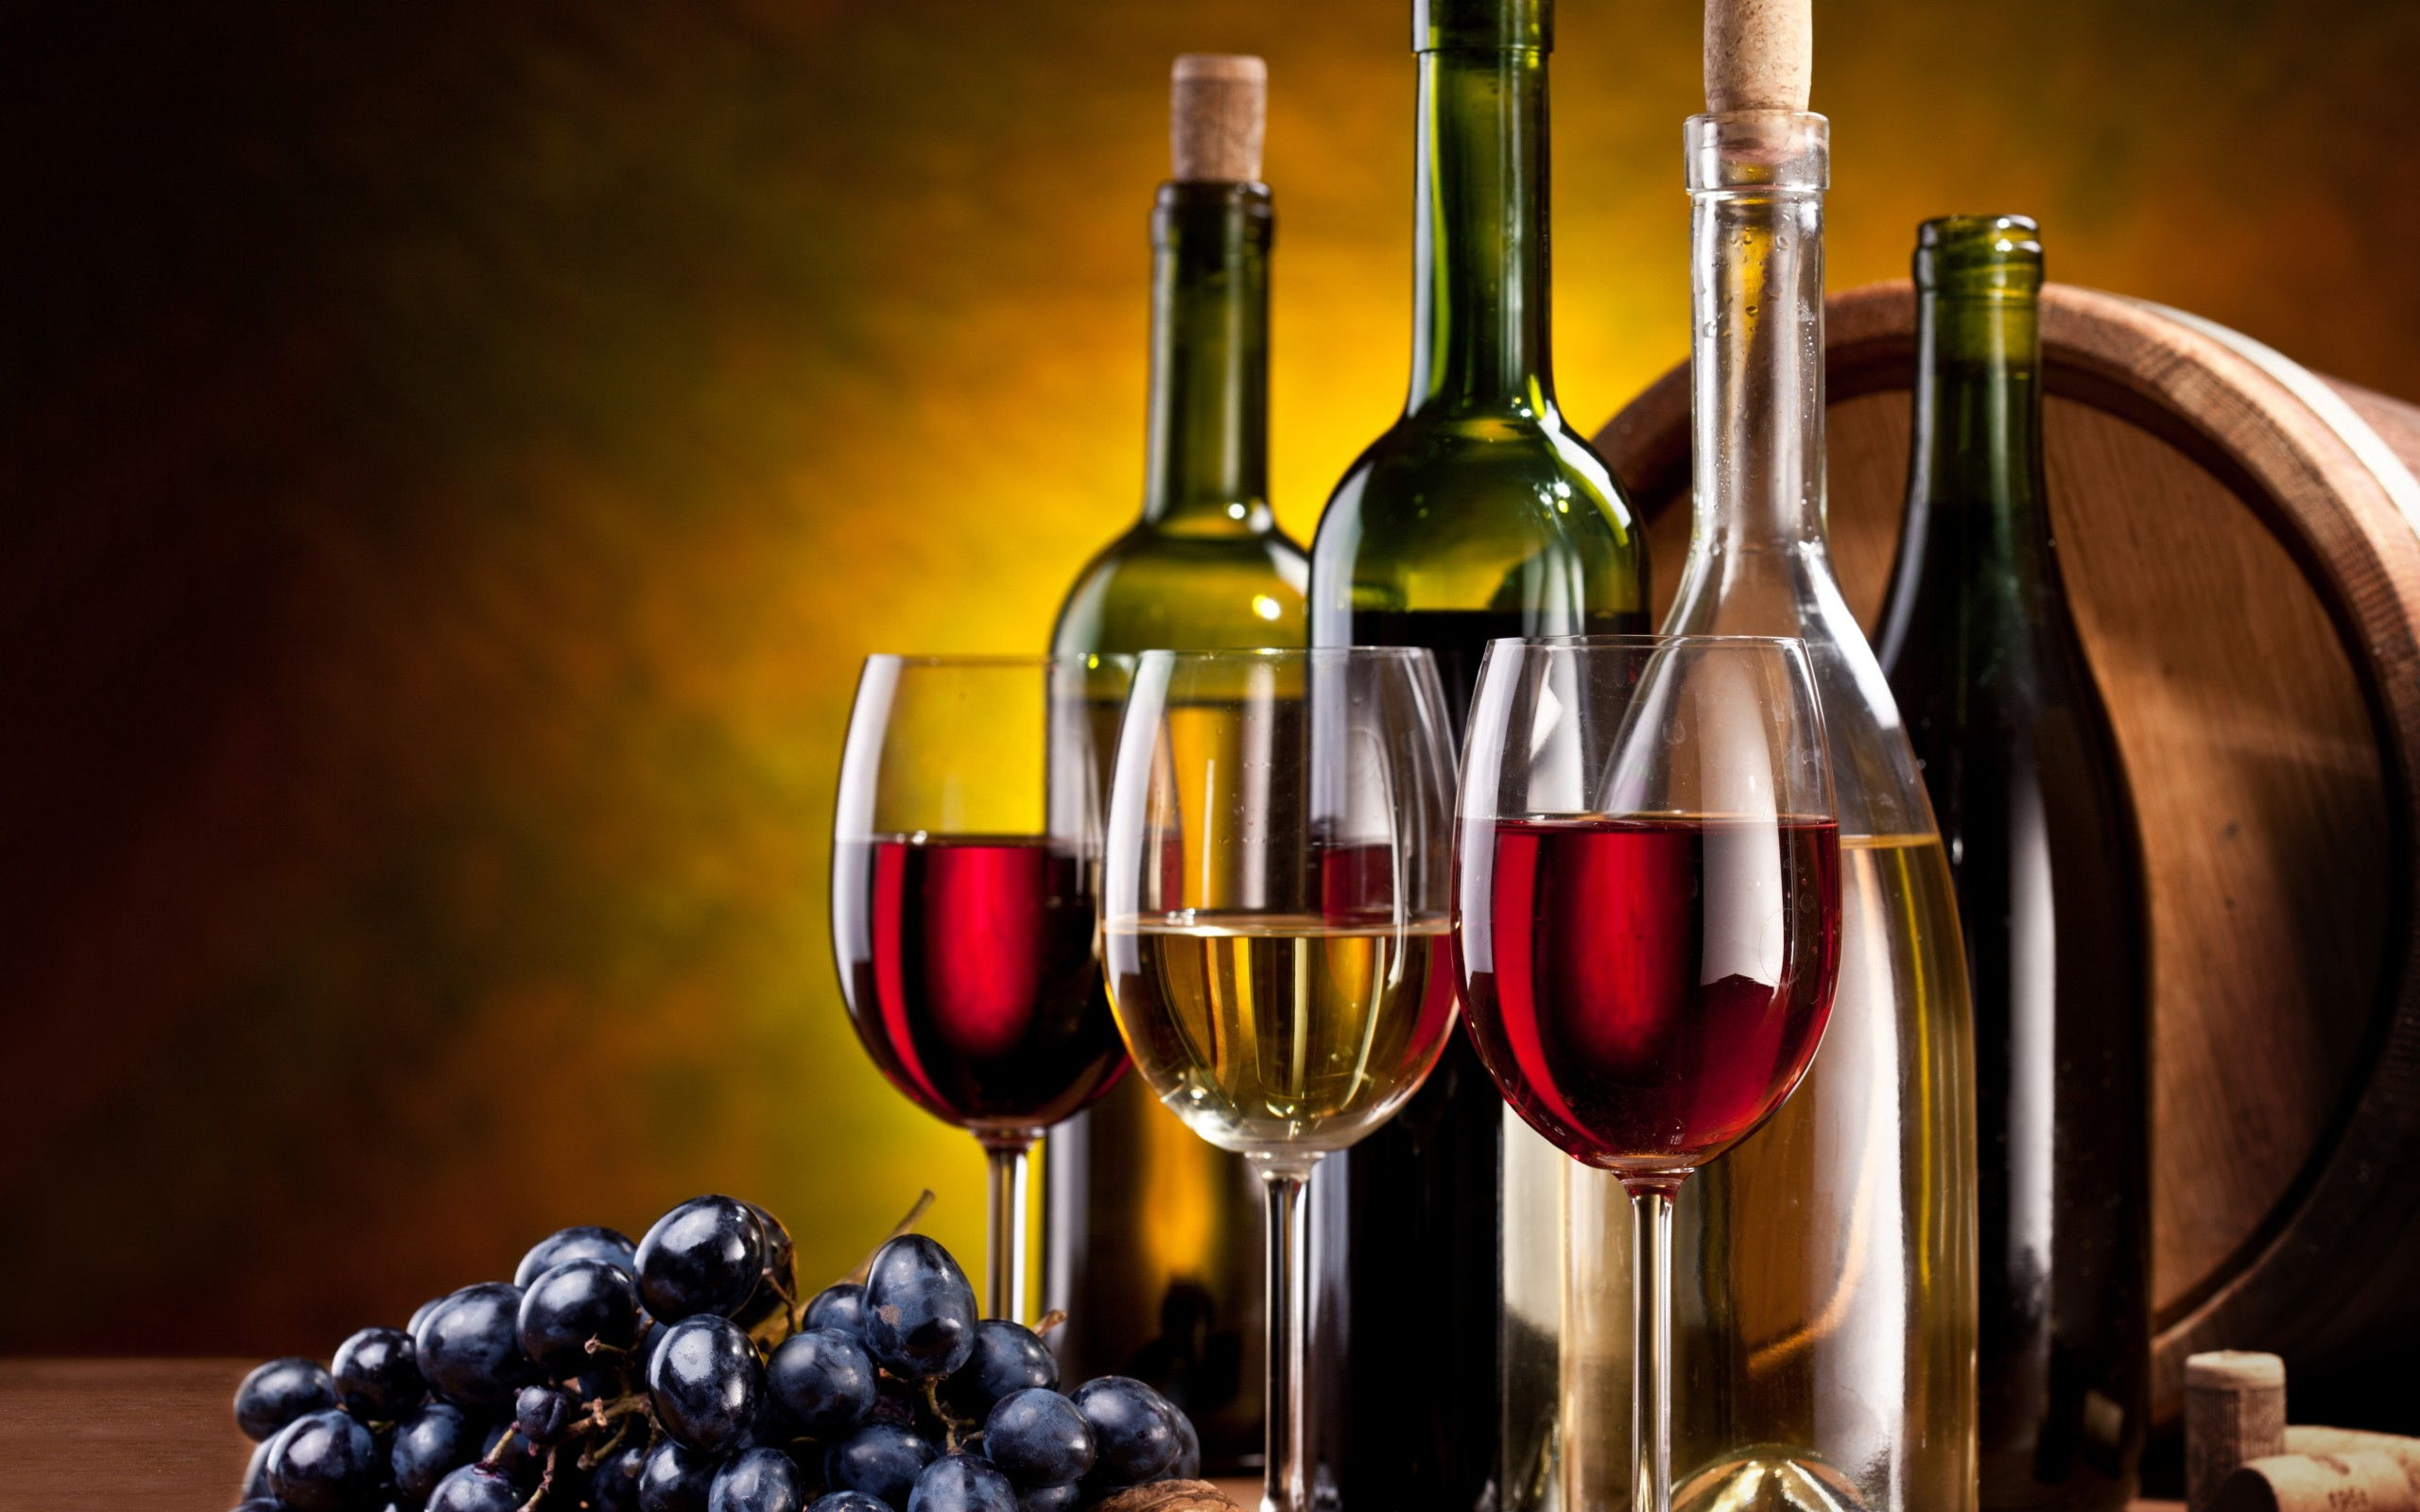 Wine Bottles Widescreen Desktop Wallpaper 536 2560x1600 Px